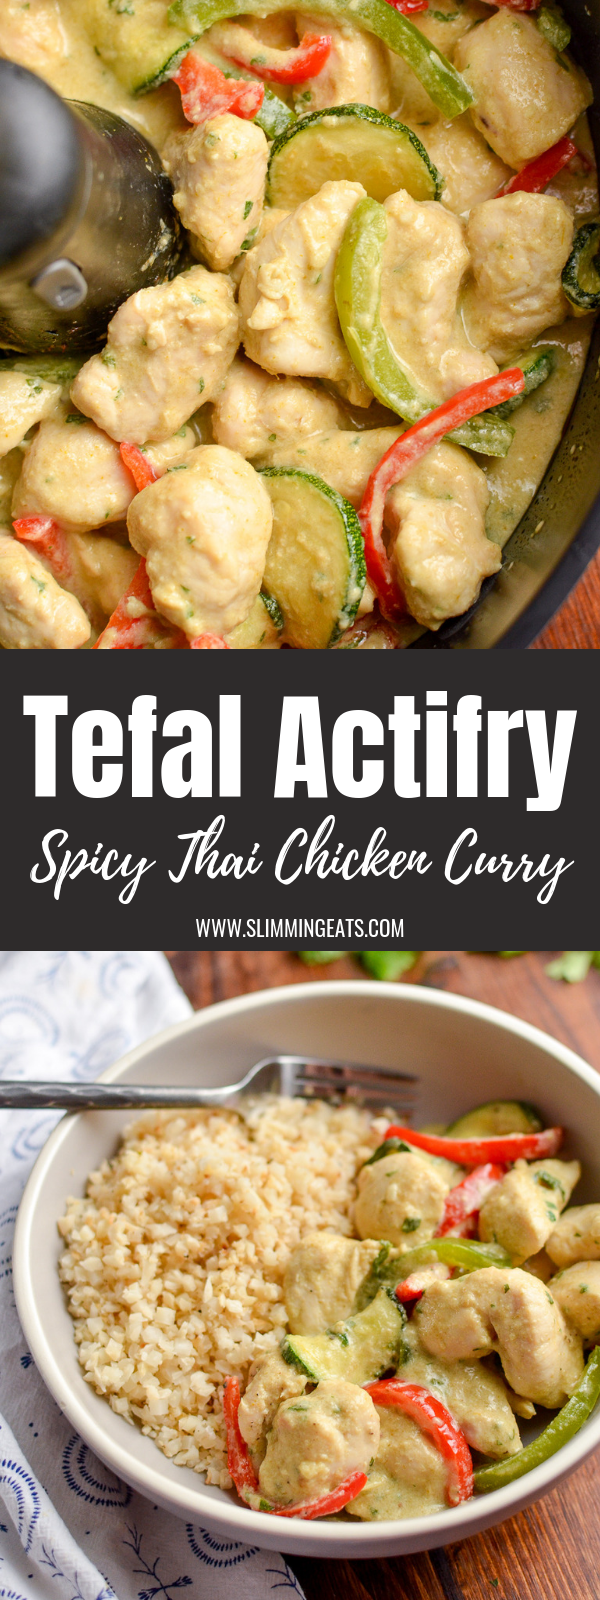 spiced Thai chicken curry pin image